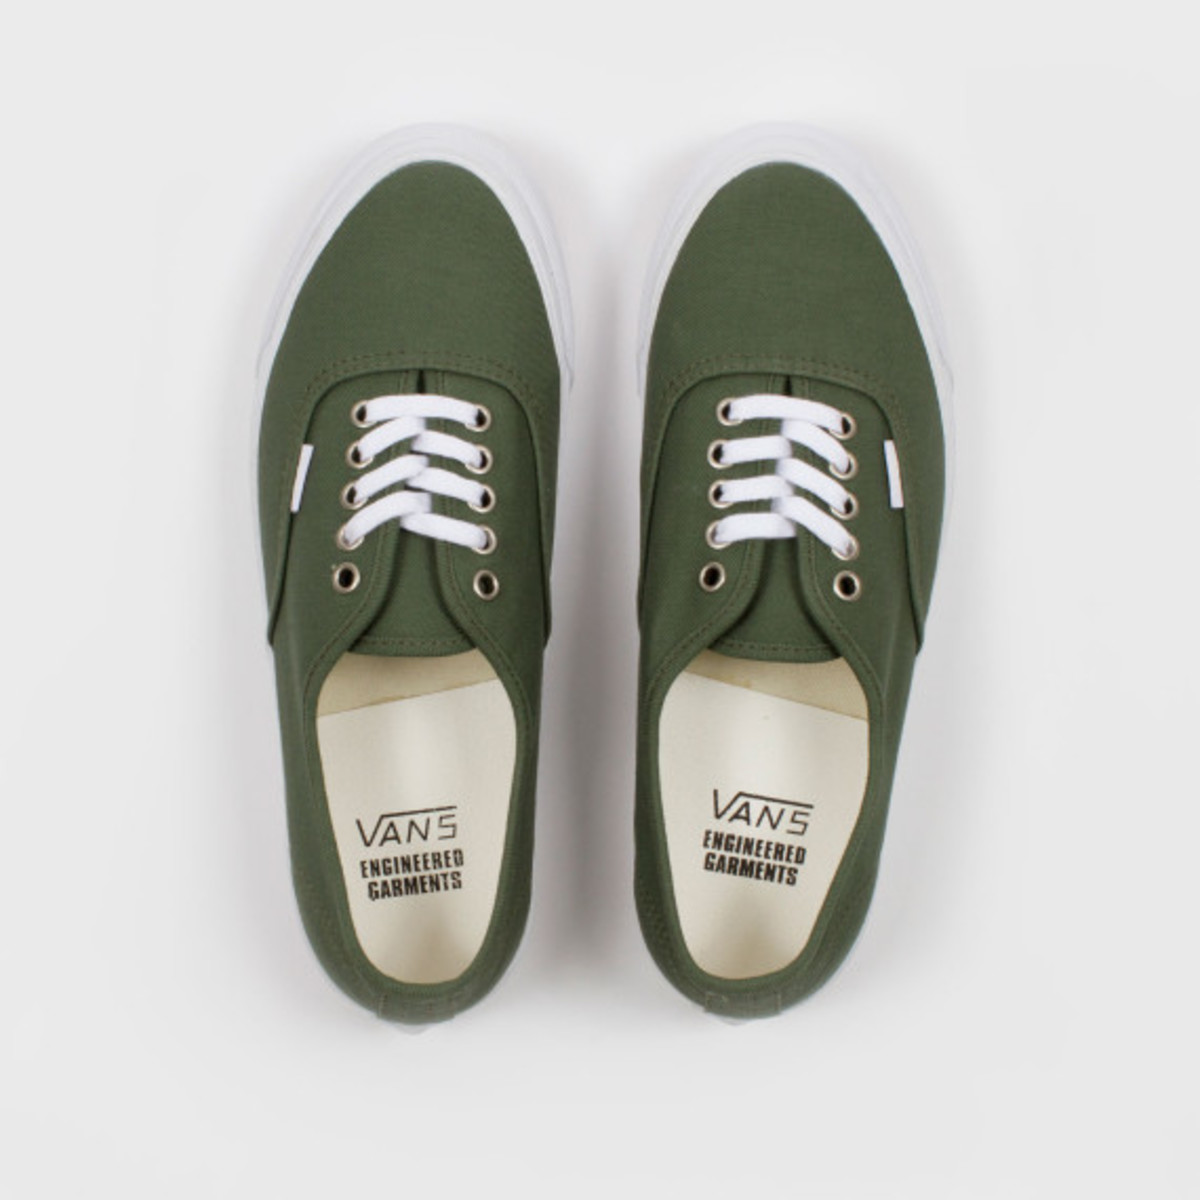 engineered-garments-vault-by-vans-collection-launch-at-nepenthes-03